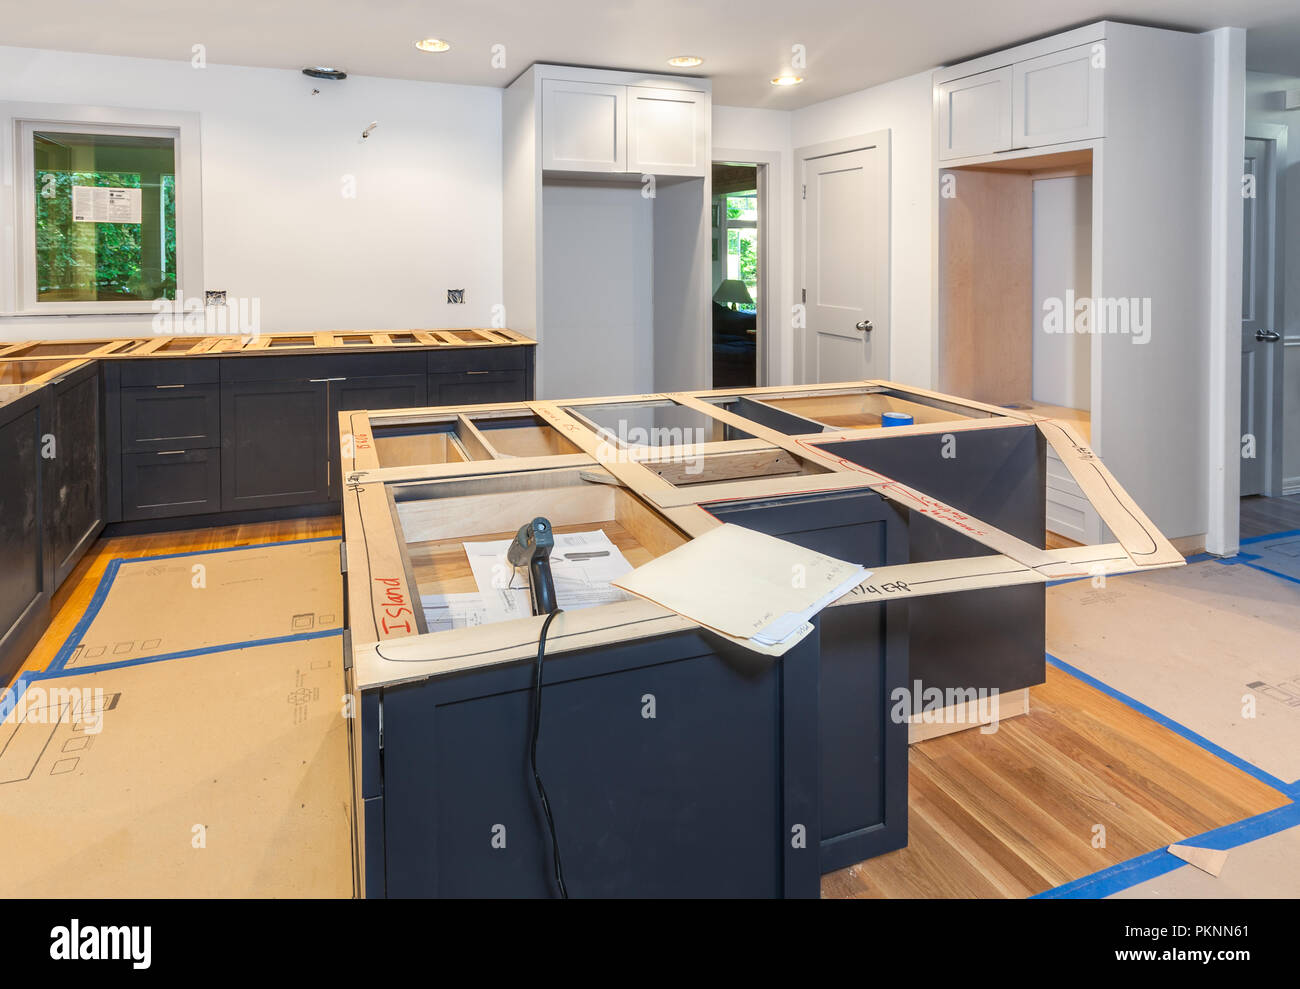 making balsa wood templates for kitchen countertops the island and